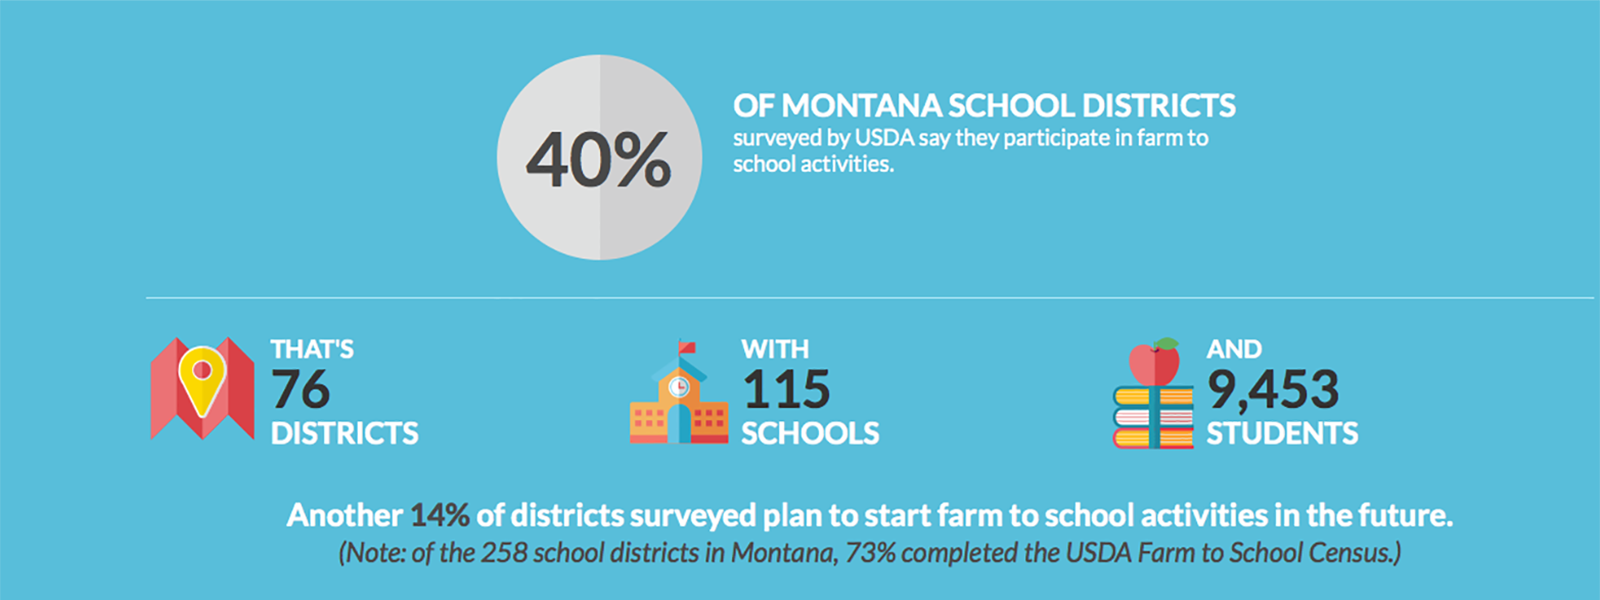 40% of Montana school districts surveyed by USDA say they participate in farm to school activities.